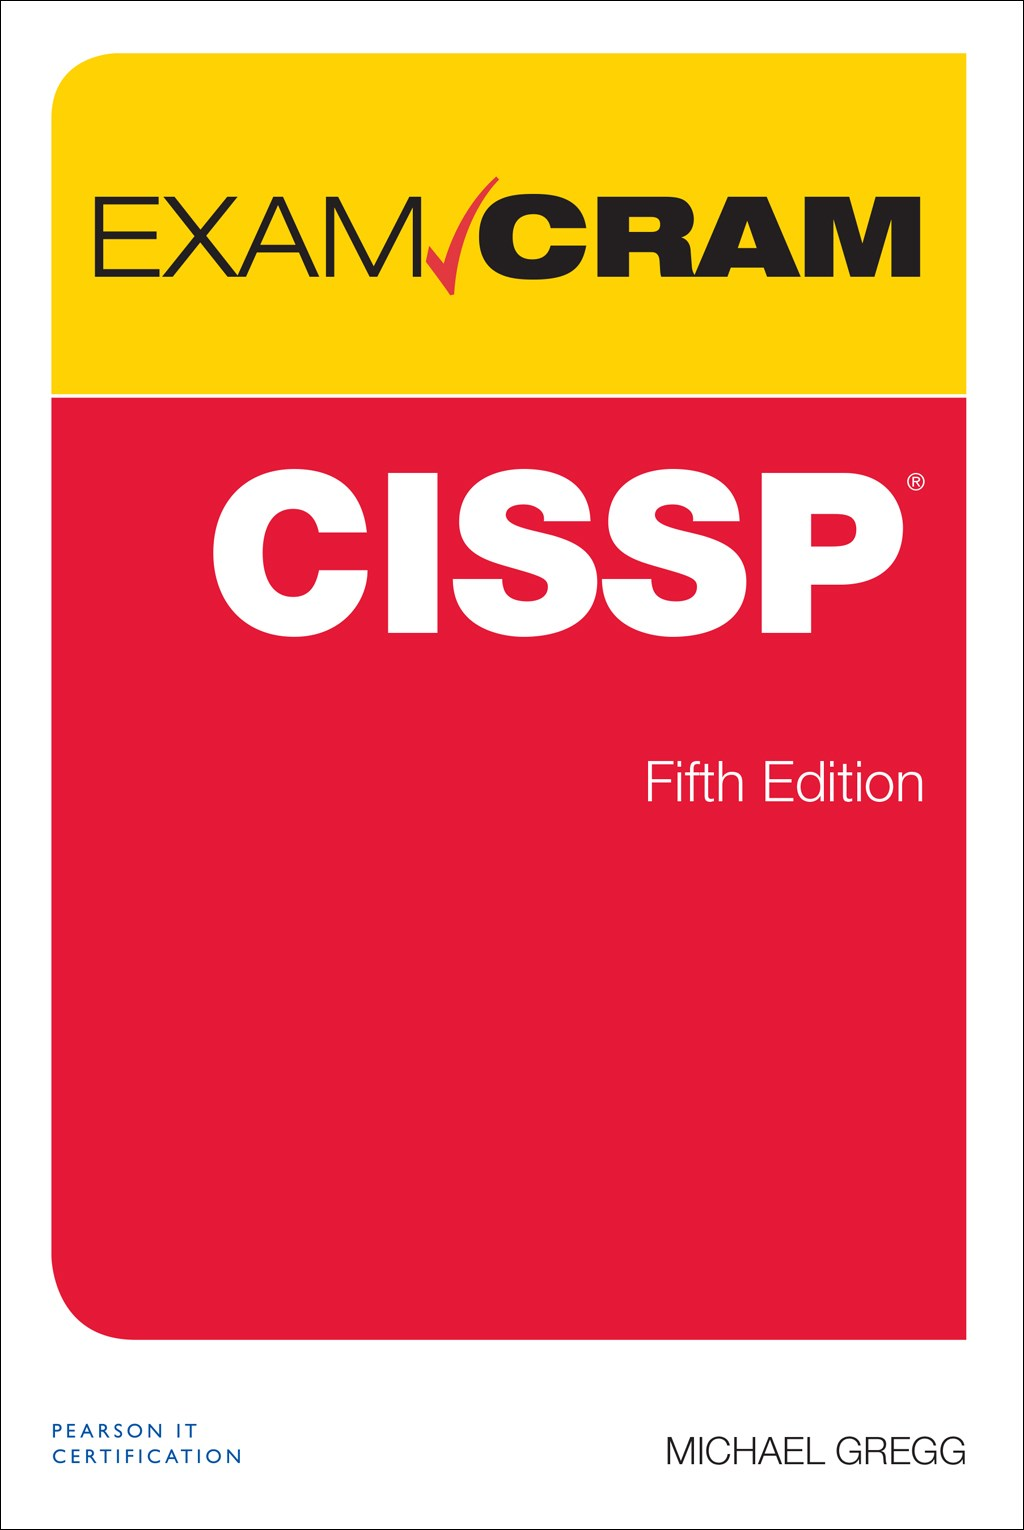 CISSP Exam Cram, 5th Edition